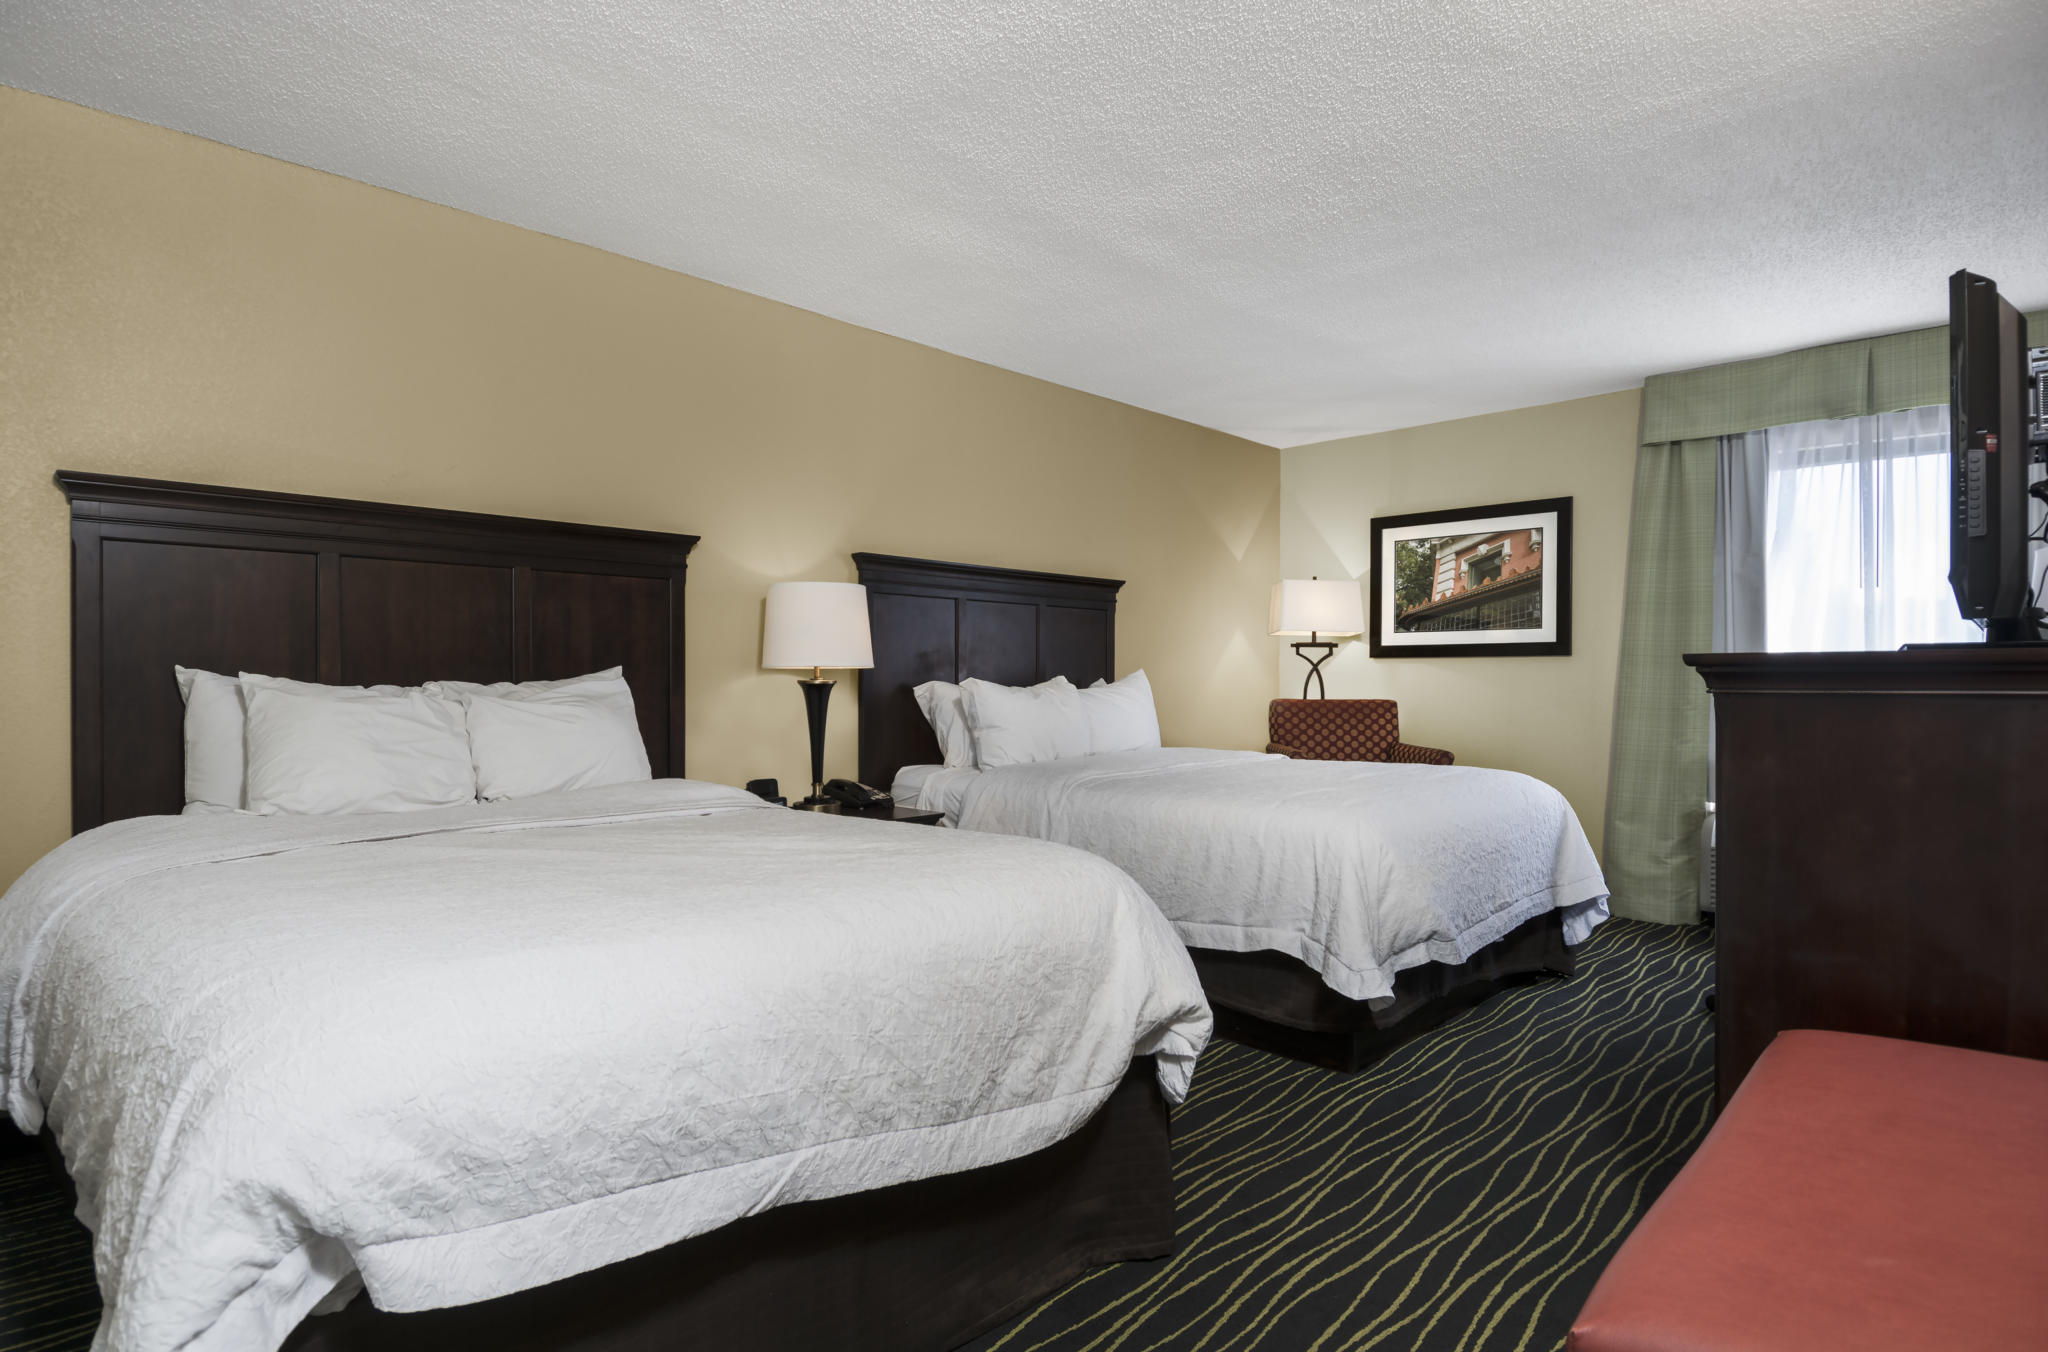 Hampton Inn Columbia/Harbison Blvd. 2 Queen Room